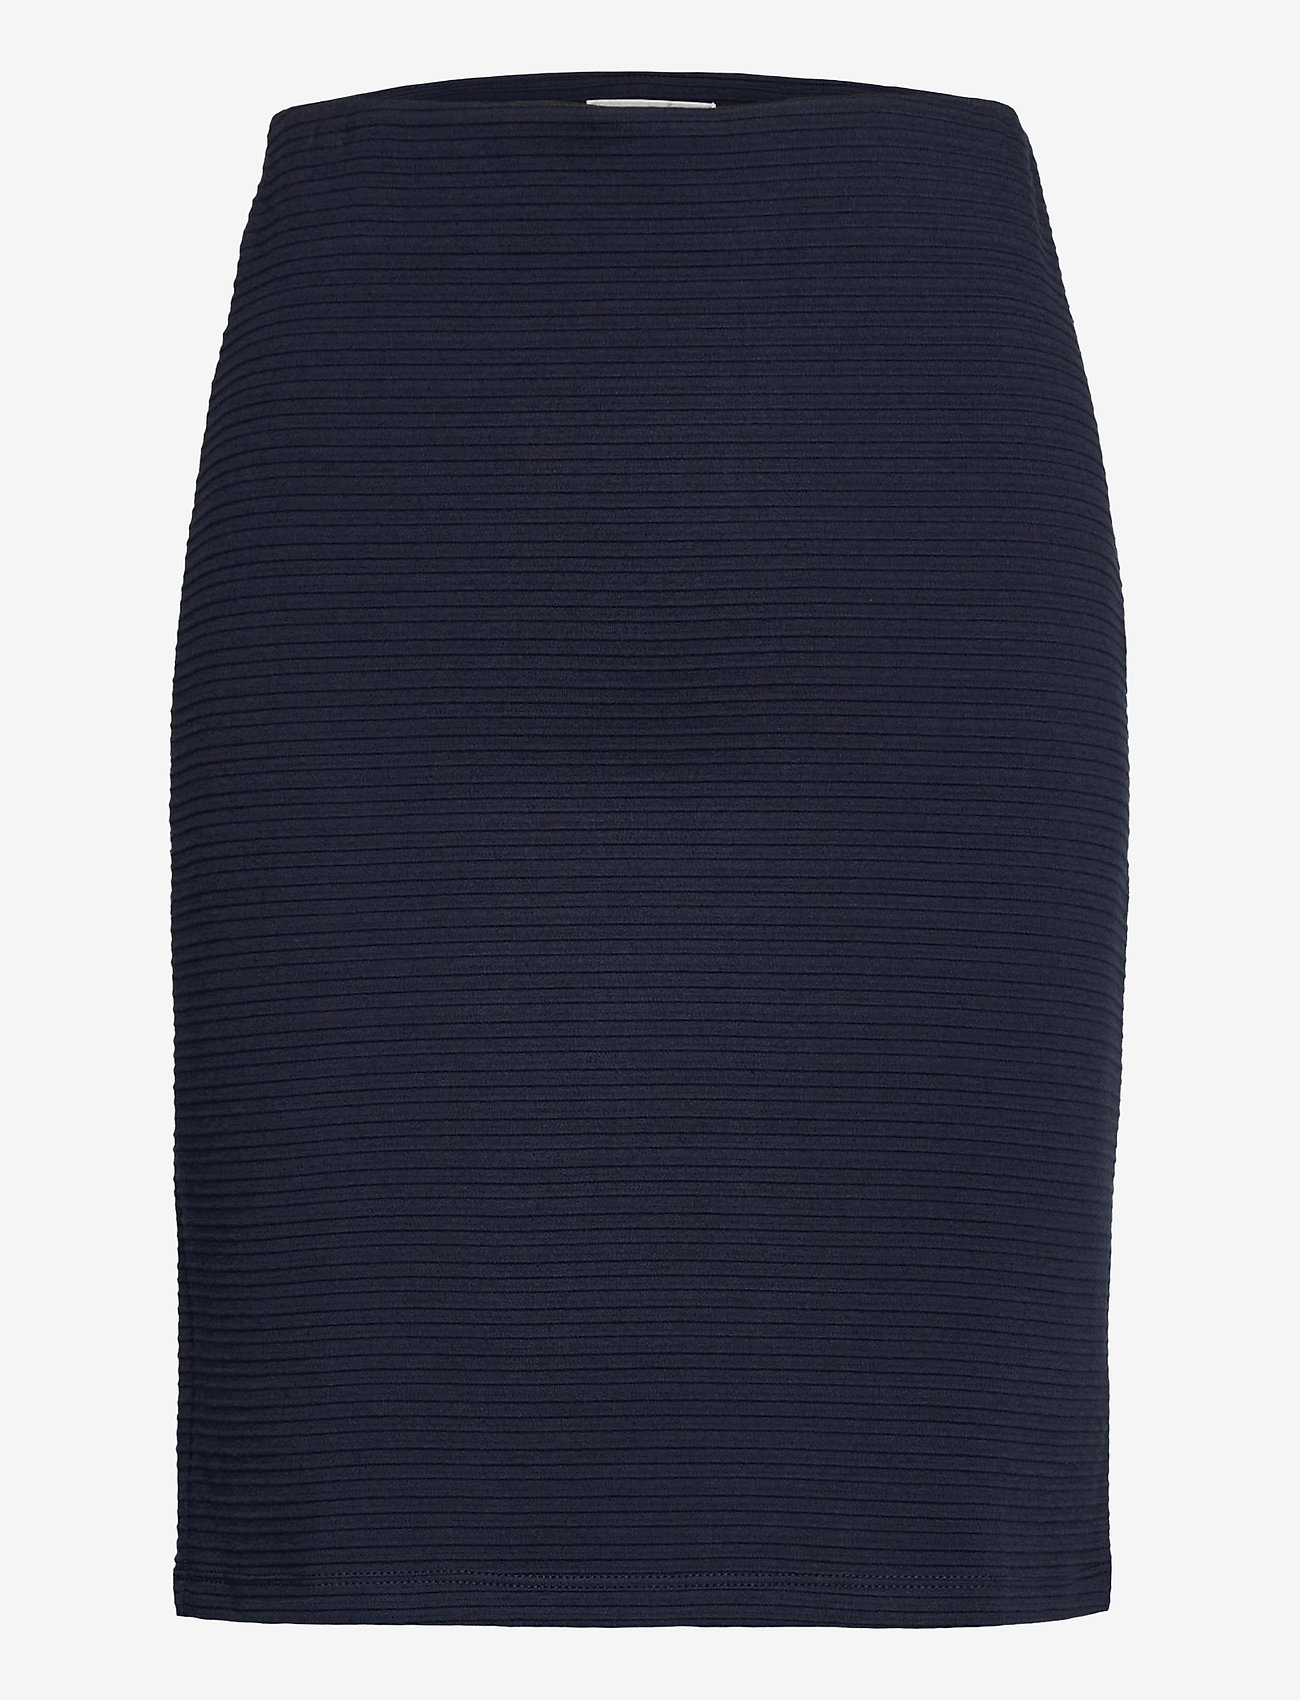 Fransa - FRZARILL 2 Skirt - midi - dark peacoat - 0